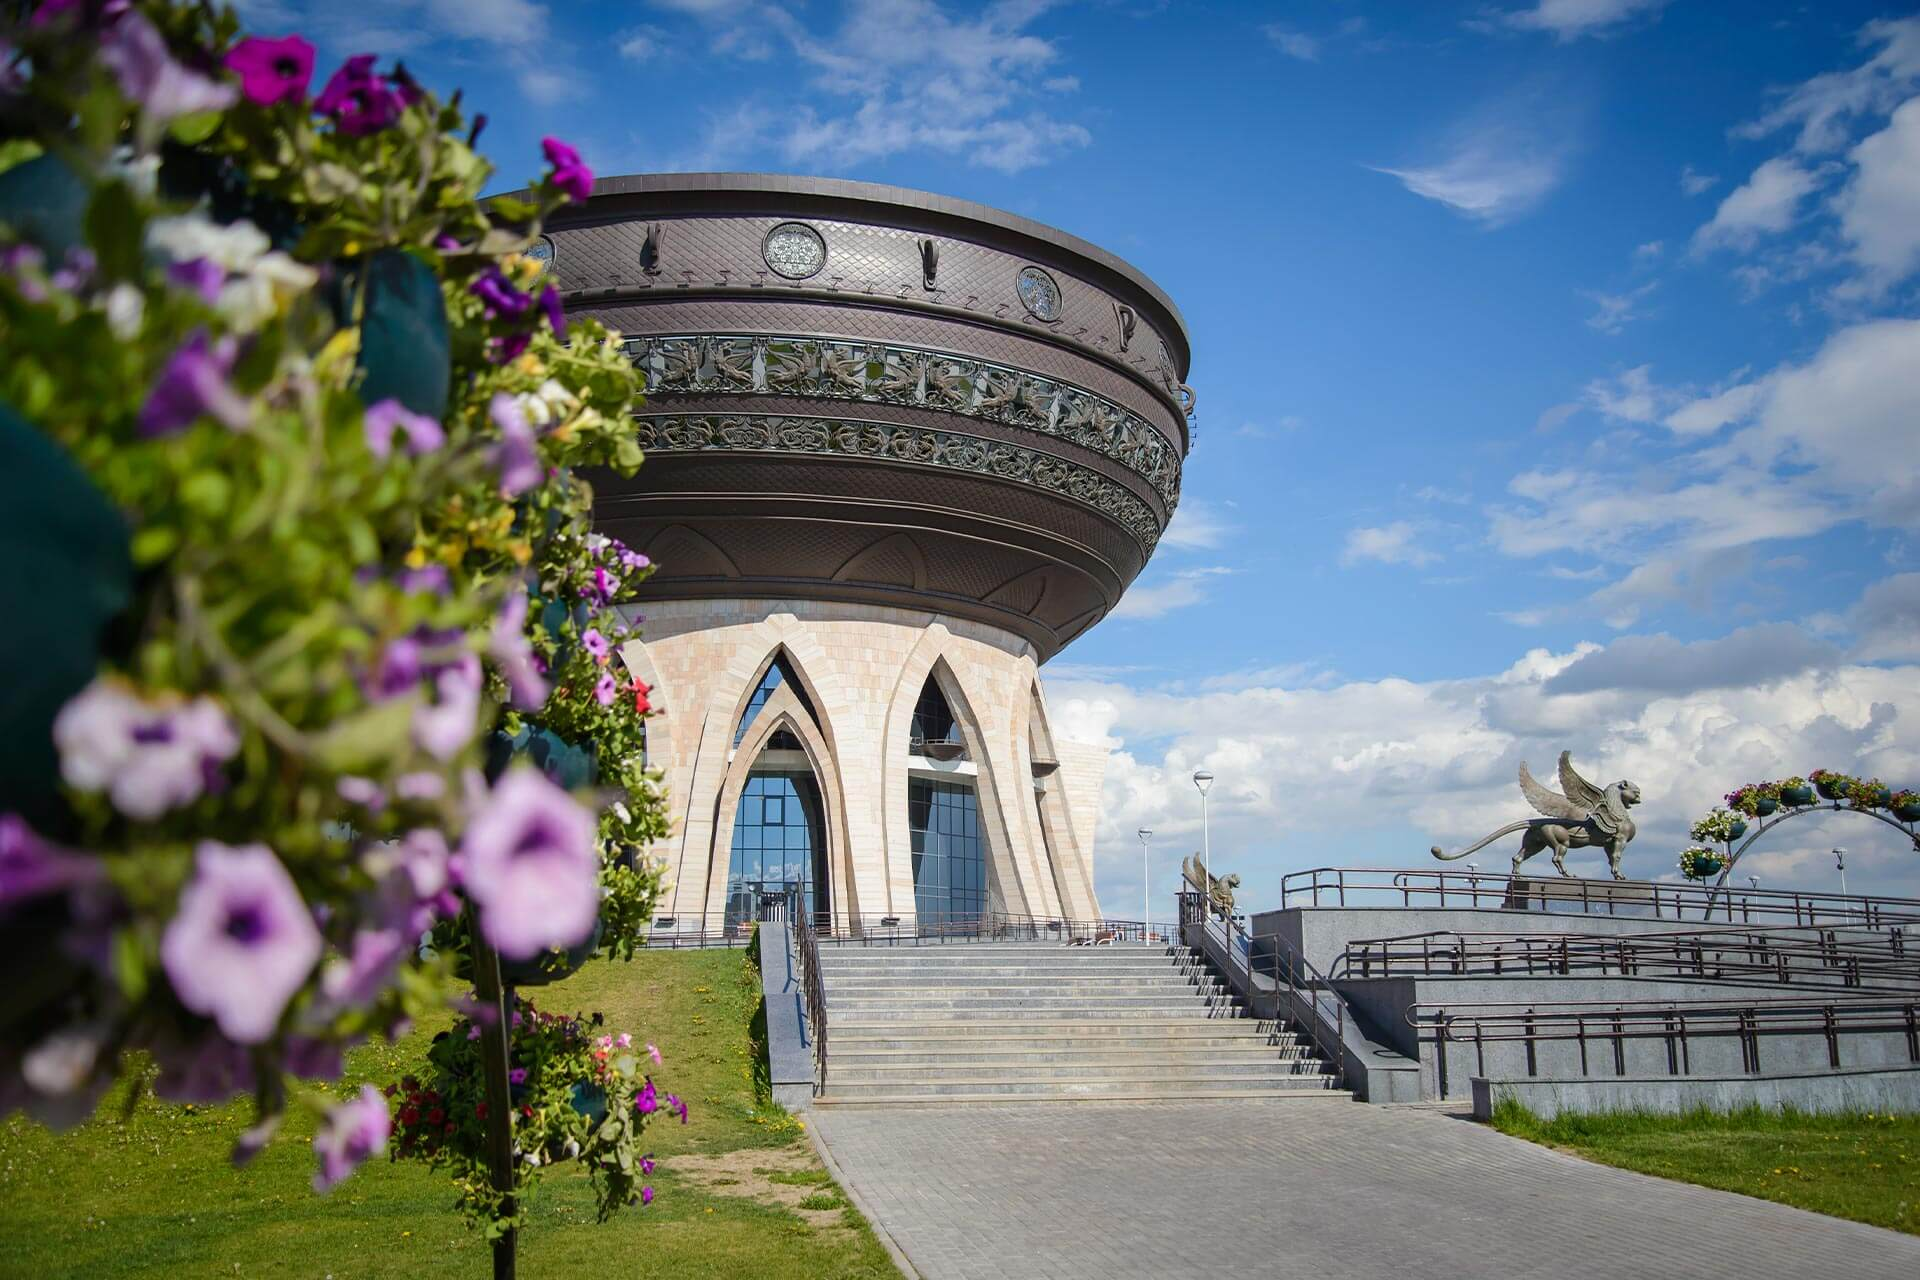 Round building of an unusual architectural style. The base of the building with gothic arch shaped windows. The top is in shape of a bowl or a copper. Flowers in front of the building